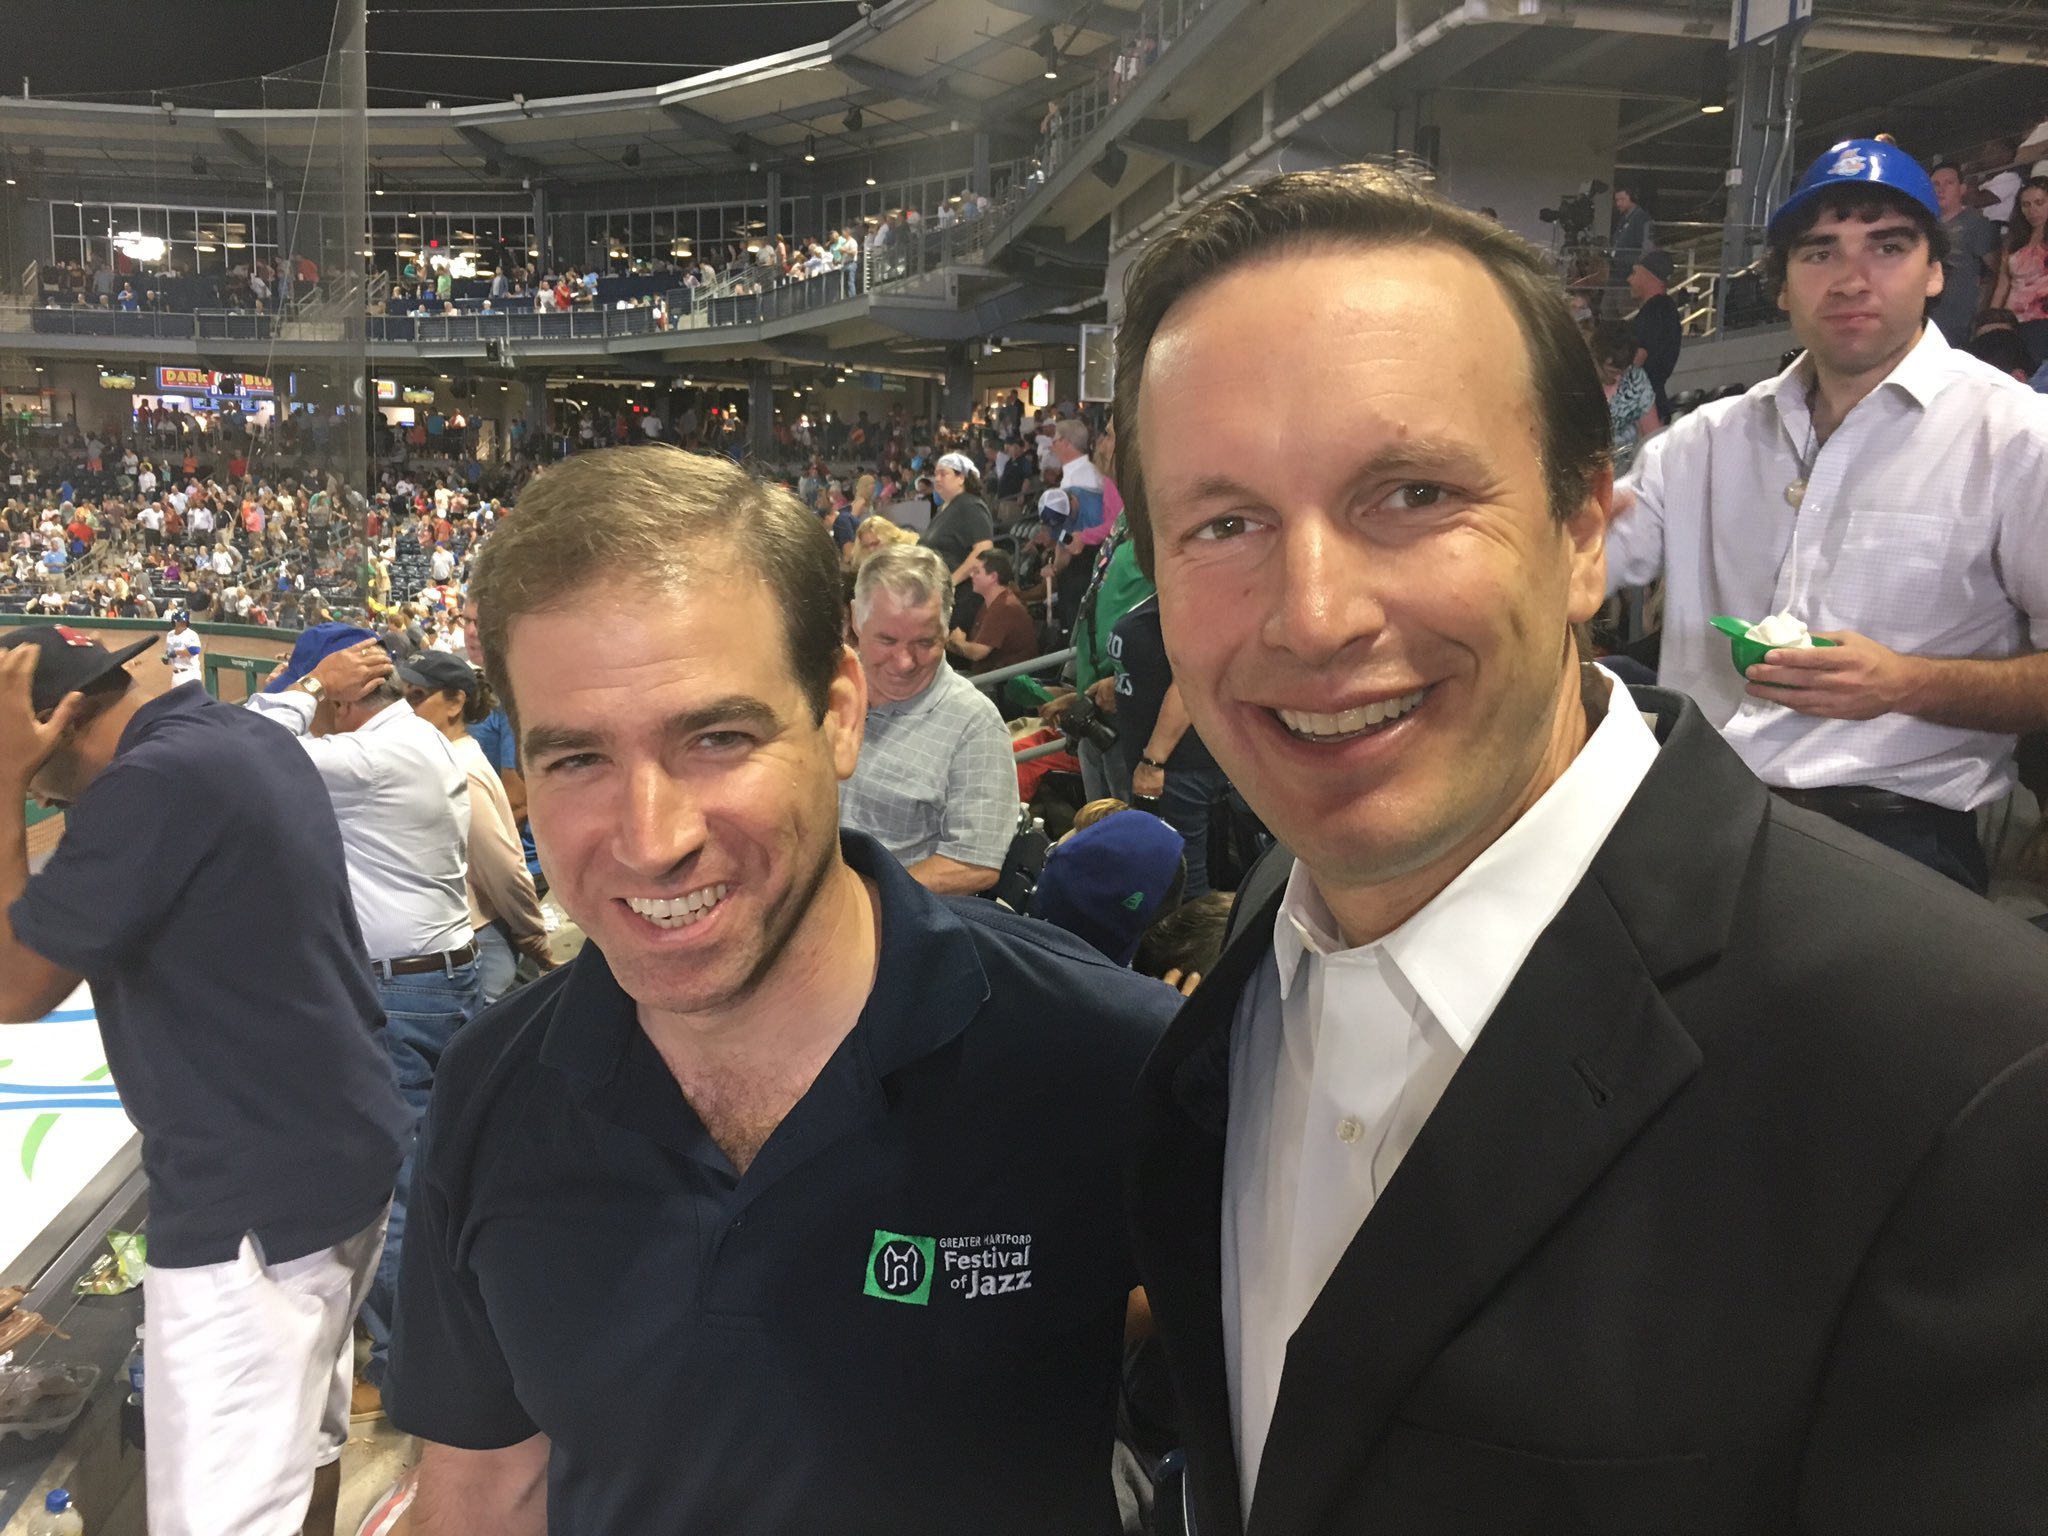 Hit the Yard Goats game tonight with my friend @MayorBronin. 8-4 loss but what an amazing stadium. Another sell out! https://t.co/Ca6nCPXWBI